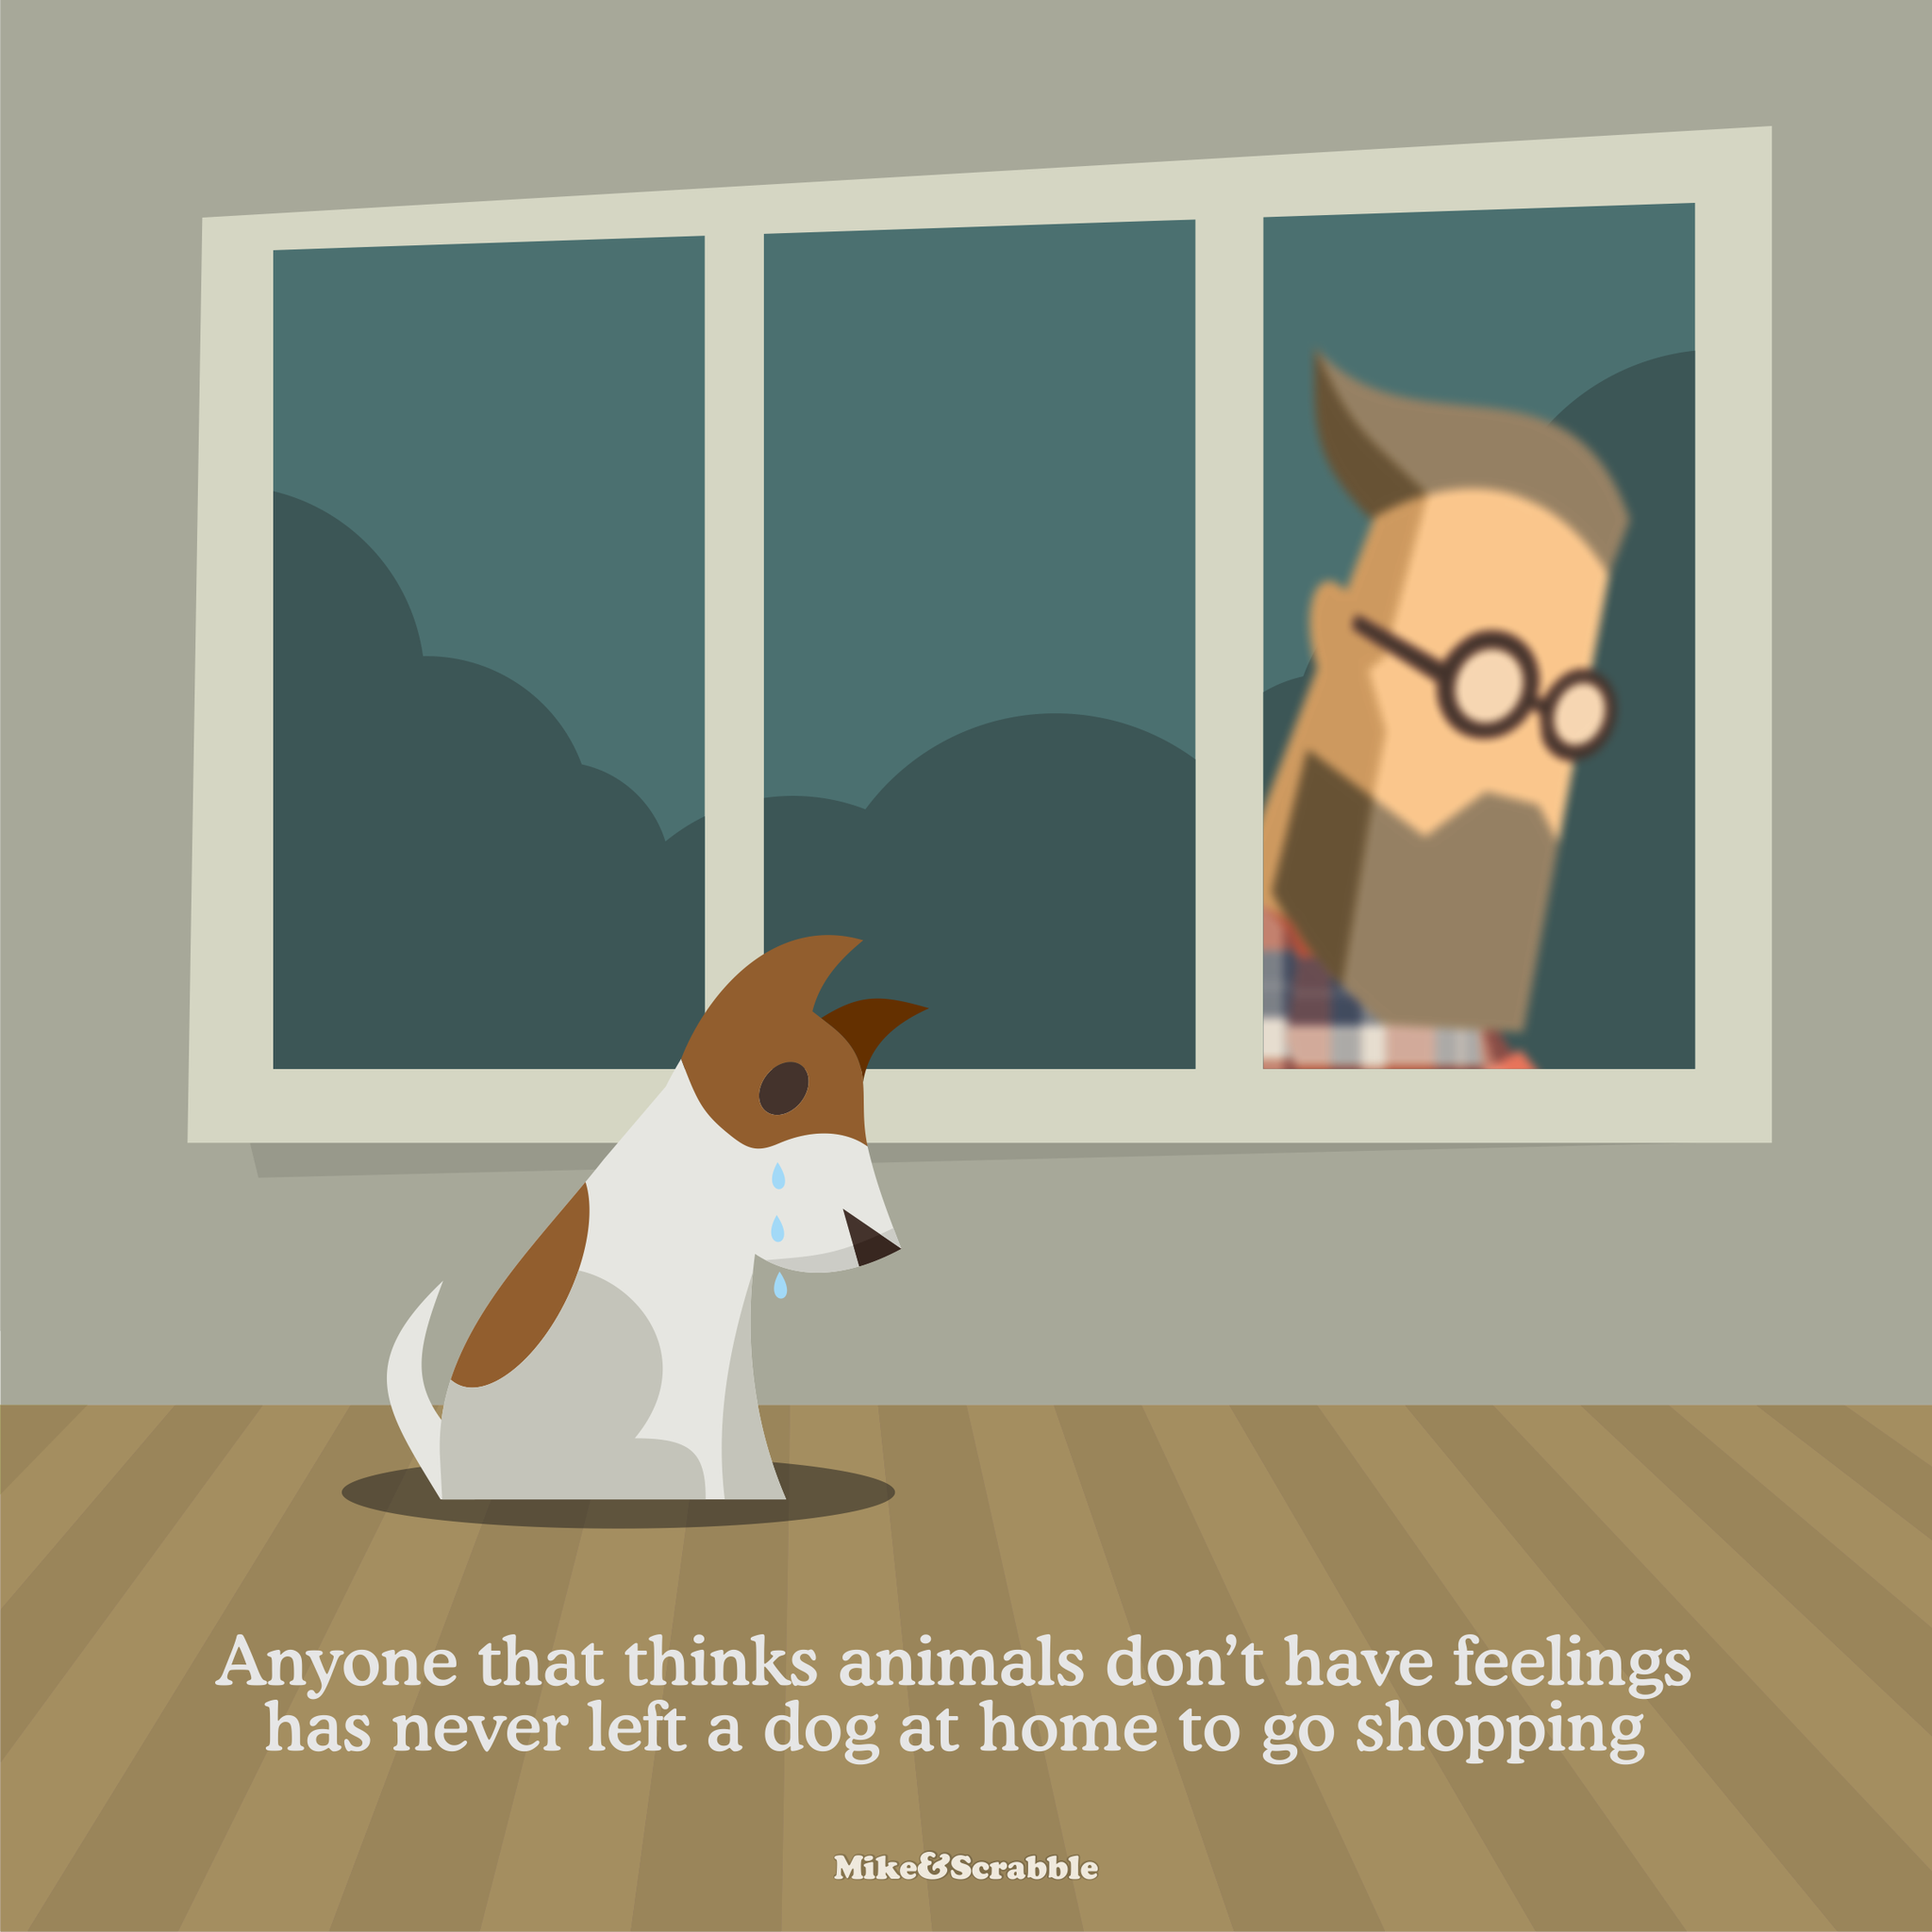 RT @mikeandscrabble: Anyone that thinks animals don't have feelings has never left a dog at home to go shopping https://t.co/wGGLZLIZvX